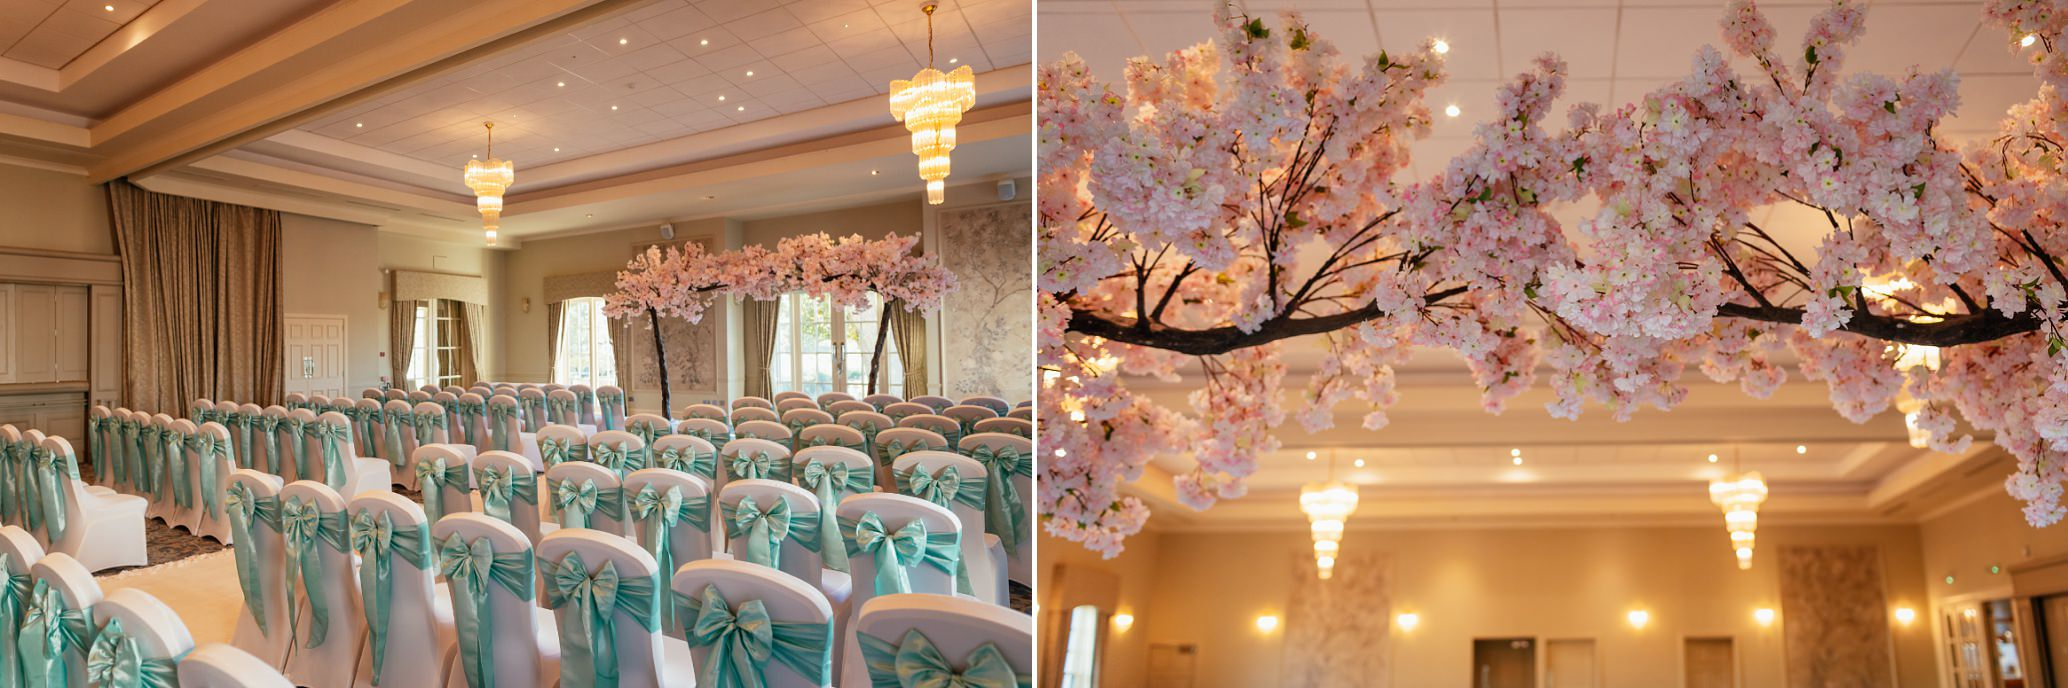 maryculter house hotel aberdeenshire wedding venue interior ballroom sunny october decorated with chair covers and cherry blossom trees